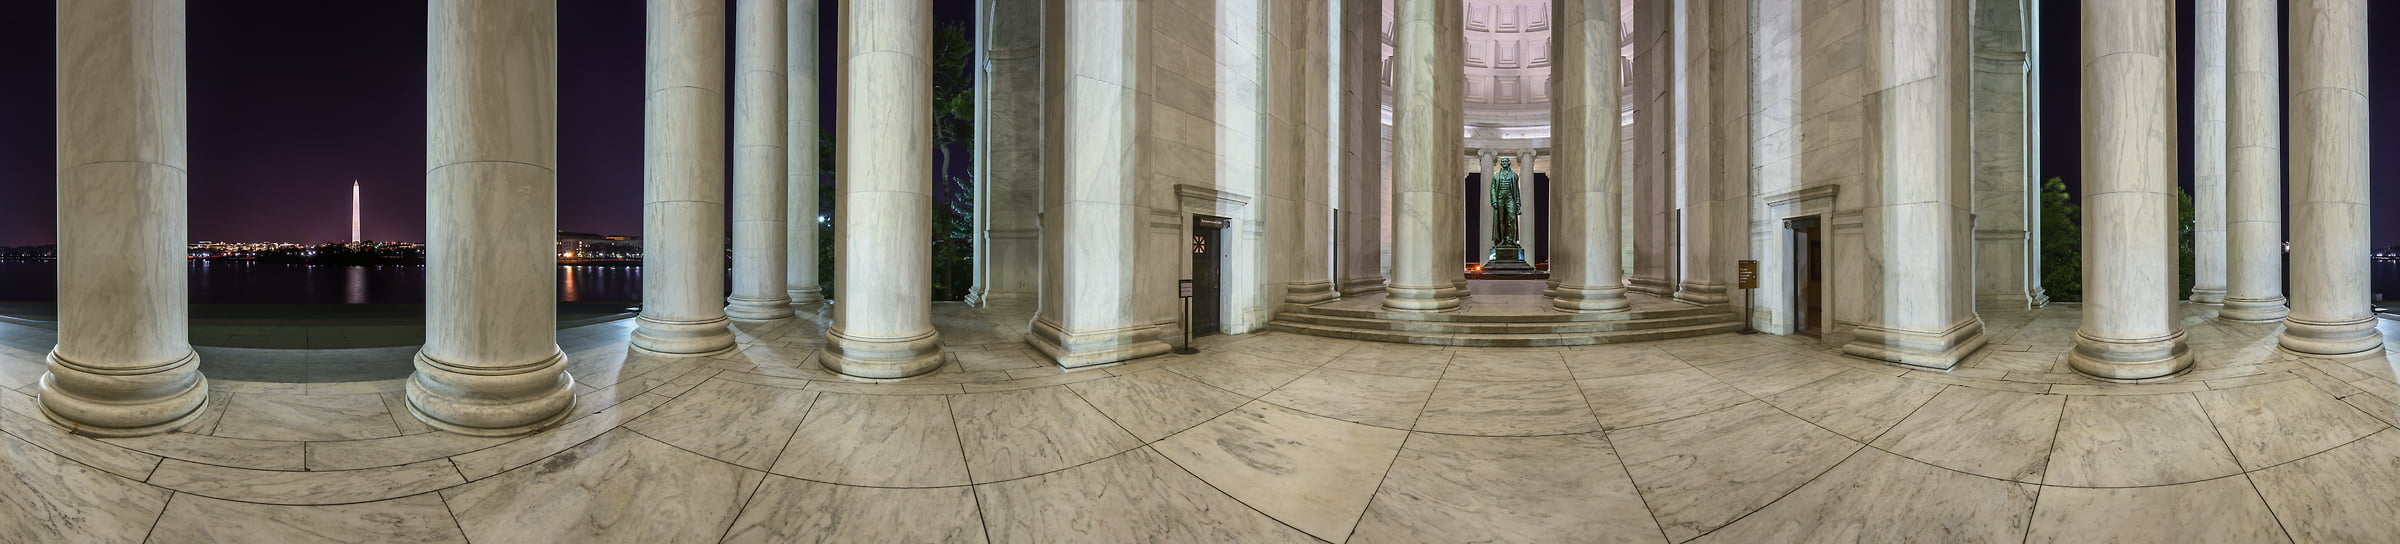 226 megapixels! A very high resolution, 360-degree VAST photo of the Jefferson Memorial at night; panorama photograph created by Tim Lo Monaco in Washington, D.C, USA